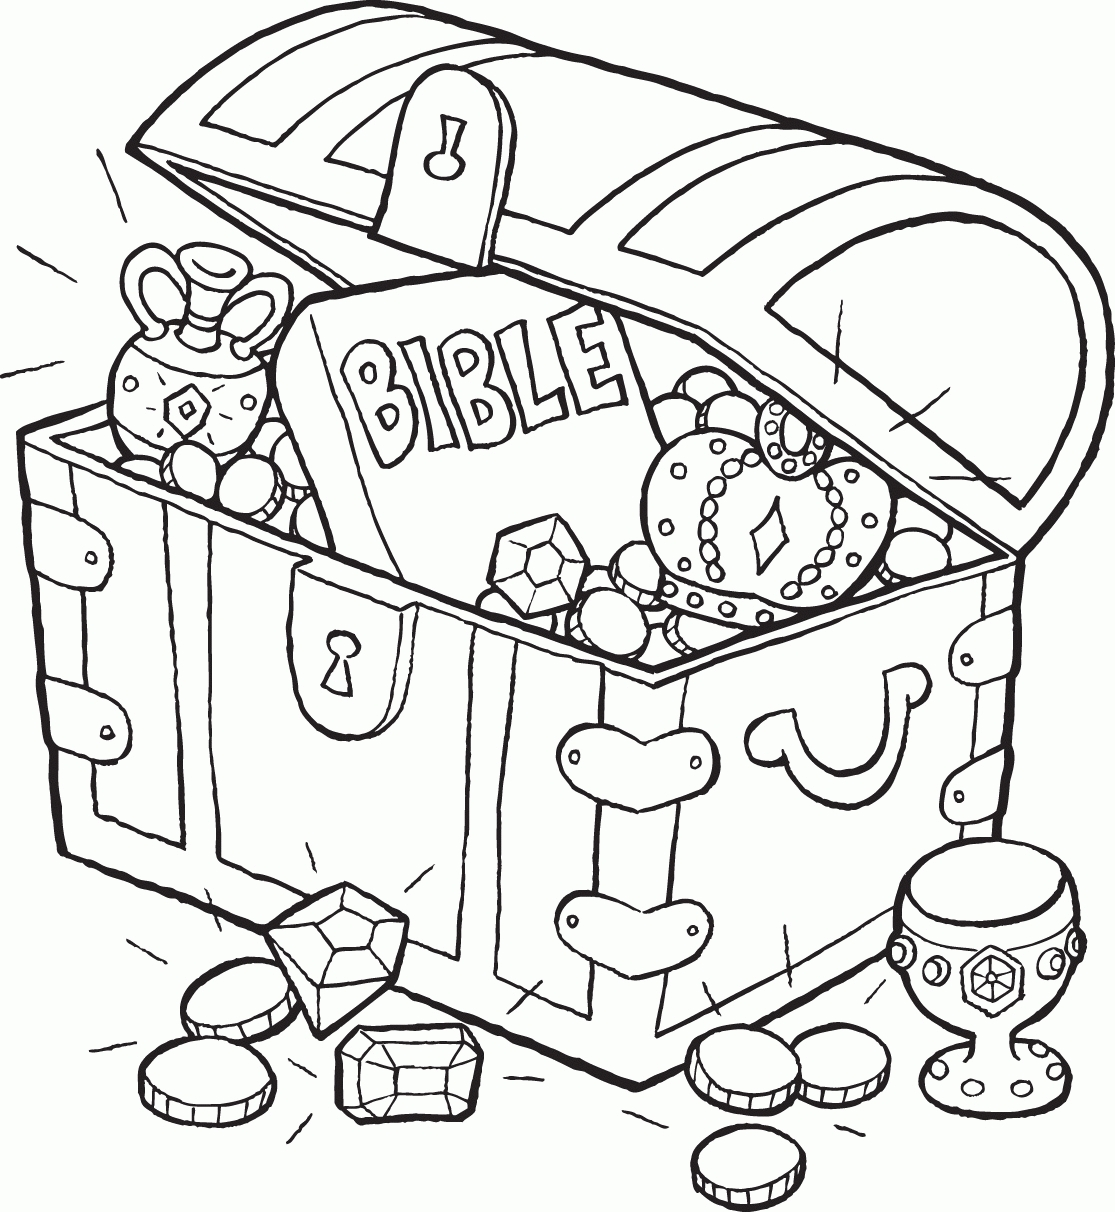 21 Treasure Chest Coloring Page Printable | FREE COLORING PAGES - Part 3